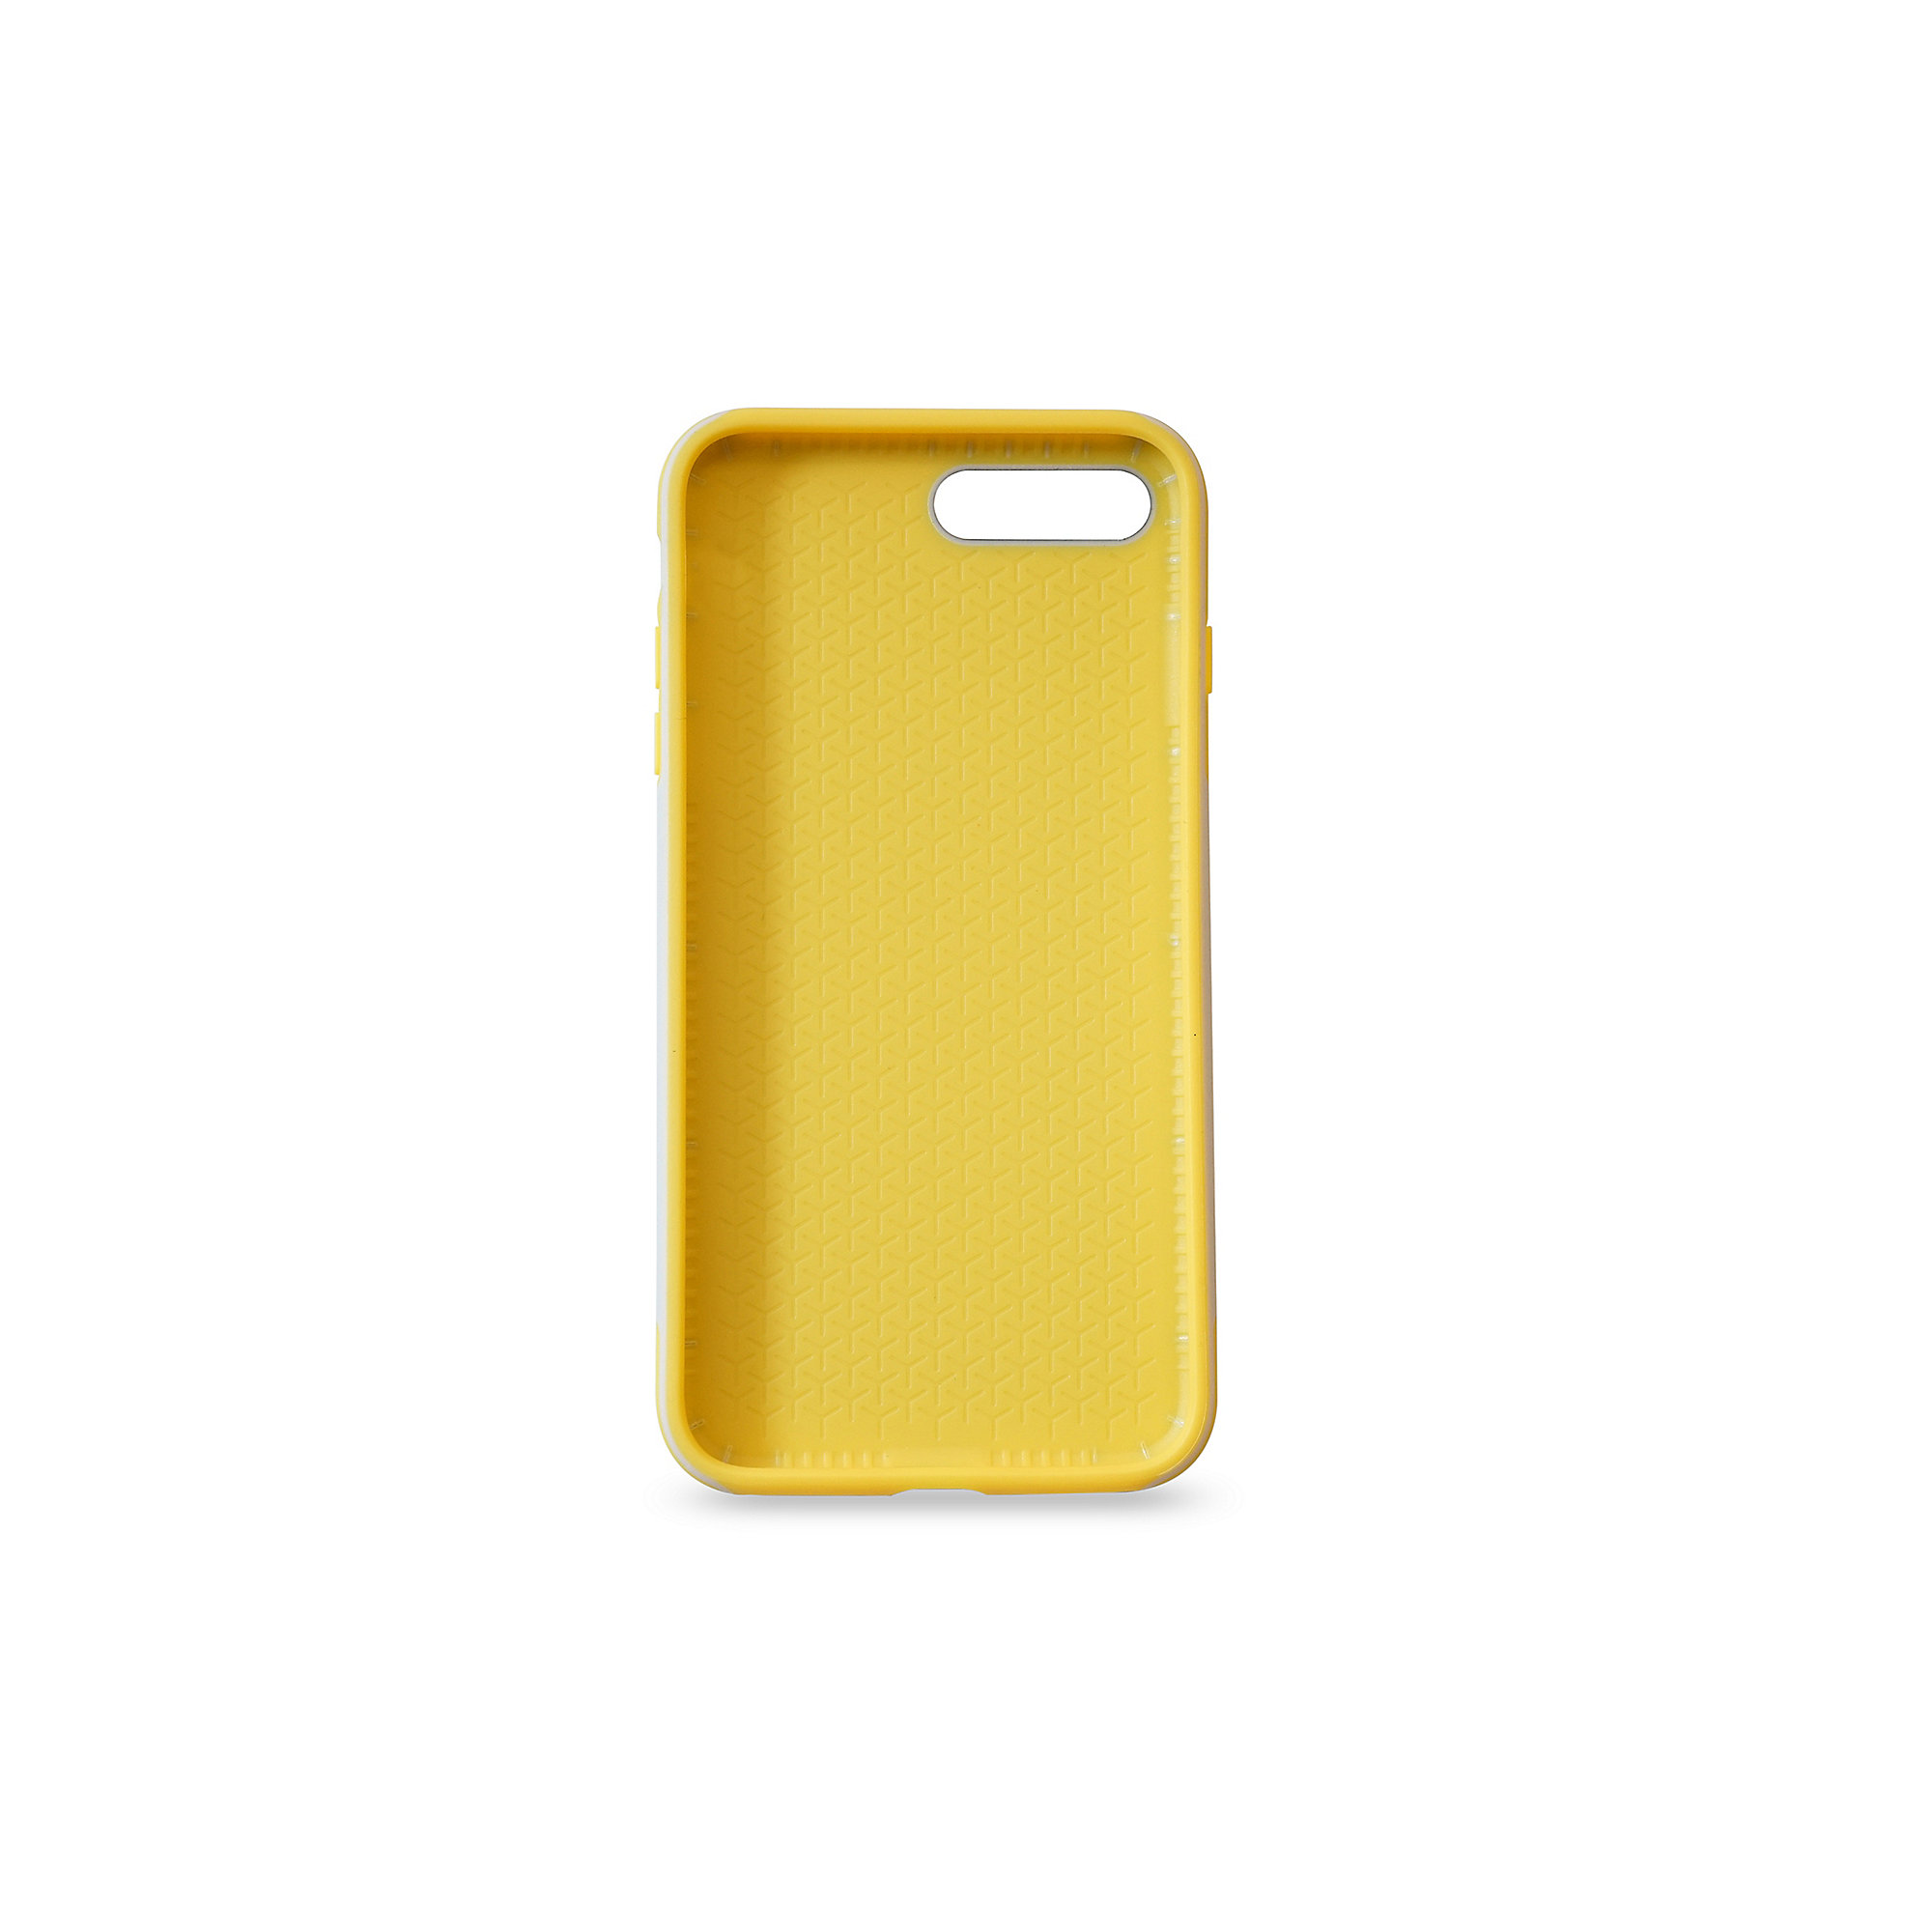 KMP Sporty Case für iPhone 8 Plus, grau/gelb